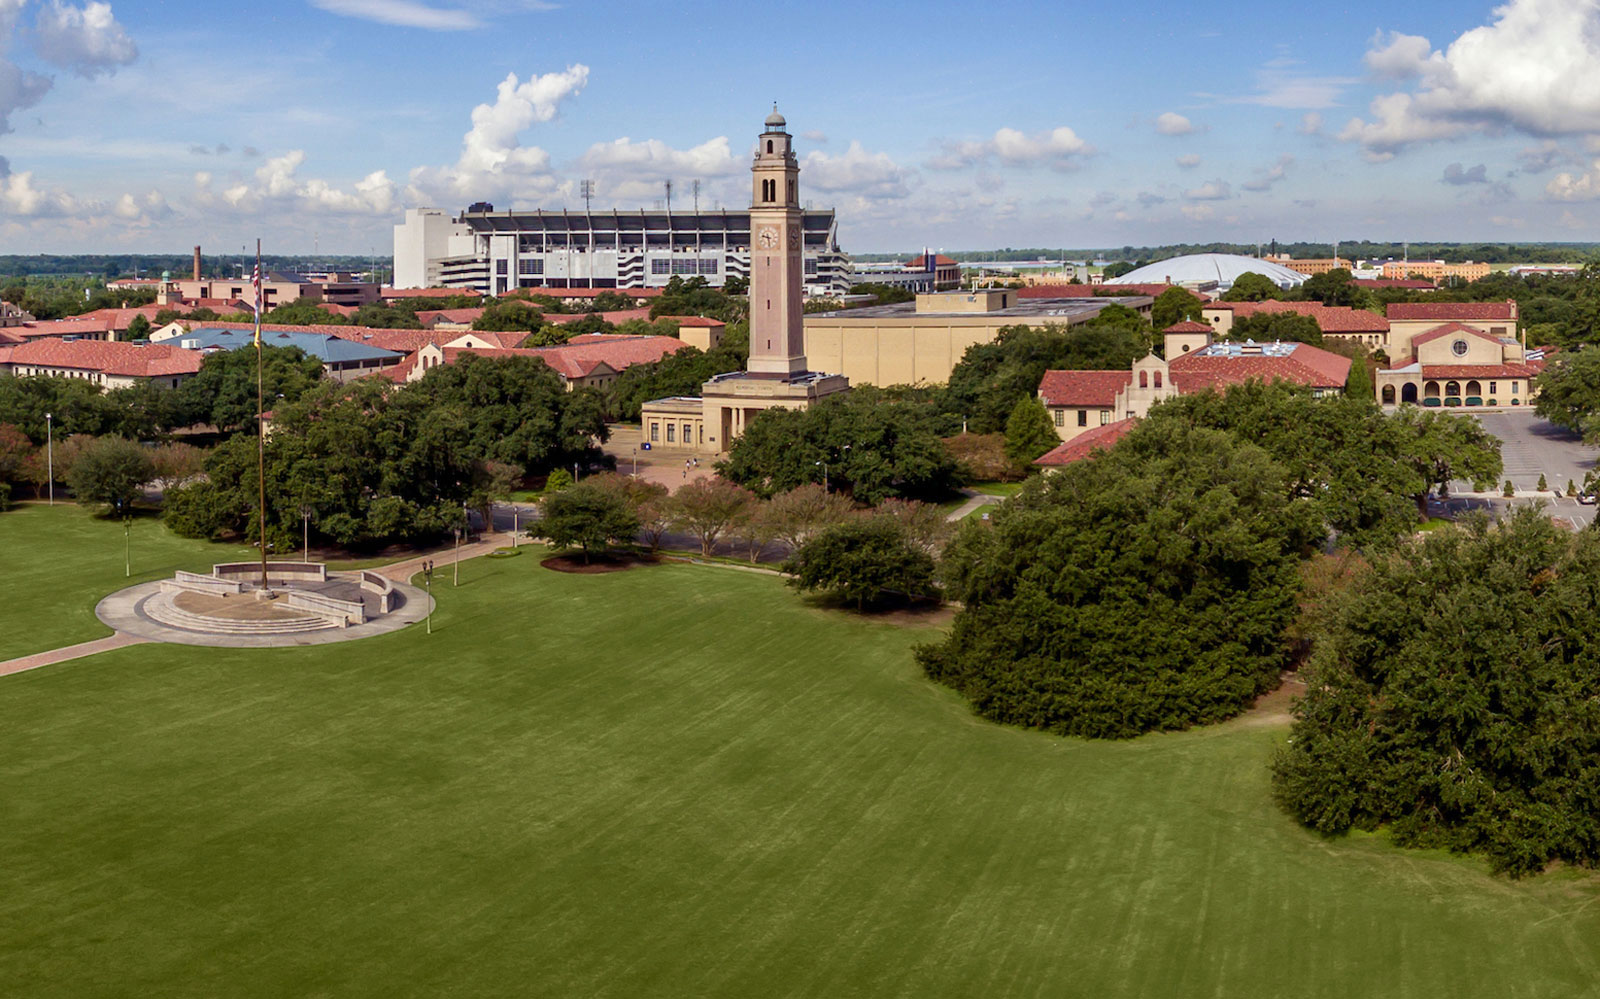 Drone photo view of the LSU campuses